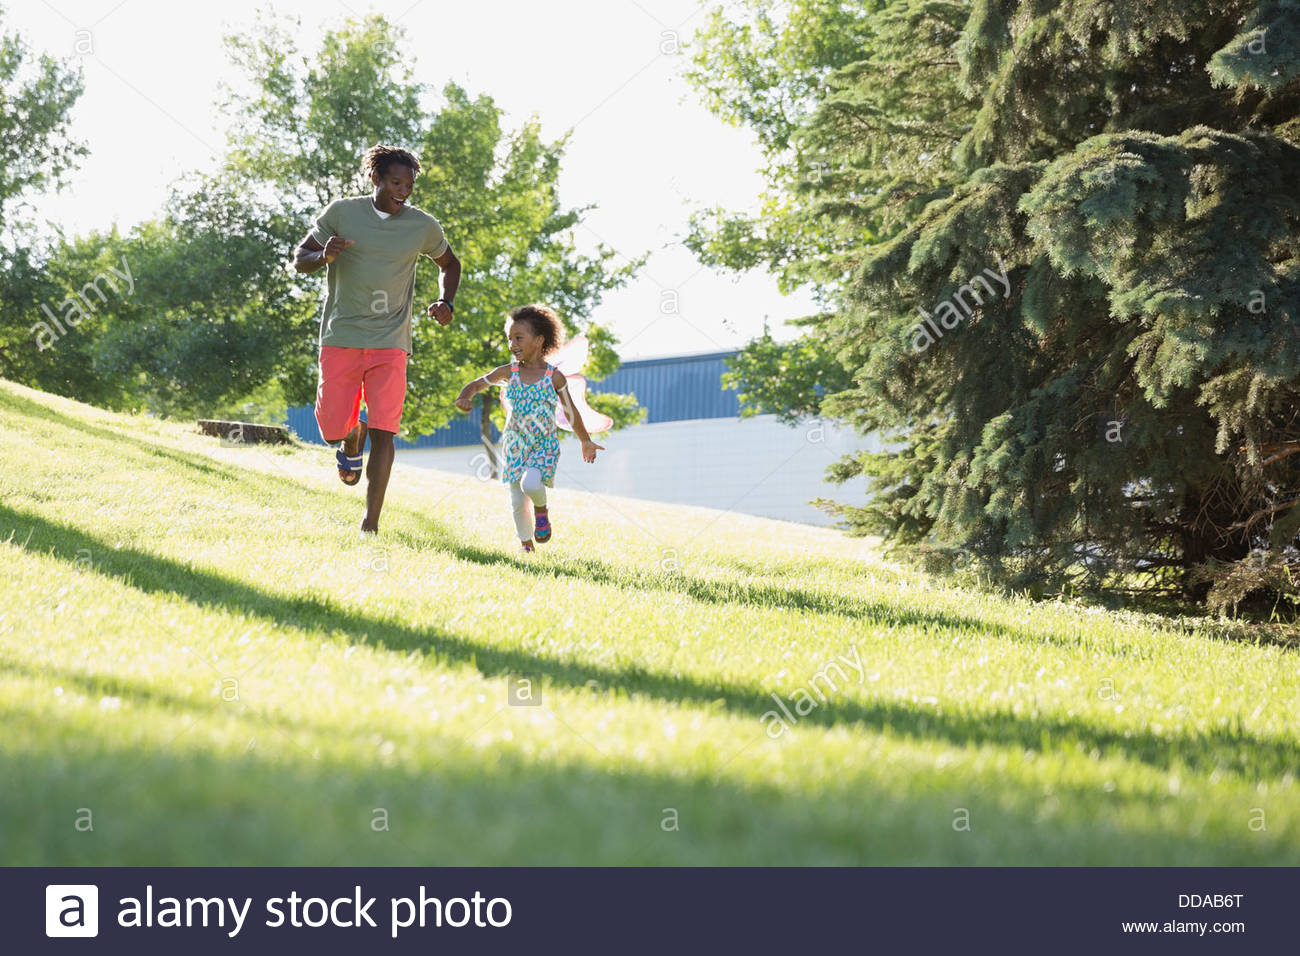 Cheerful père et fille running in park Photo Stock